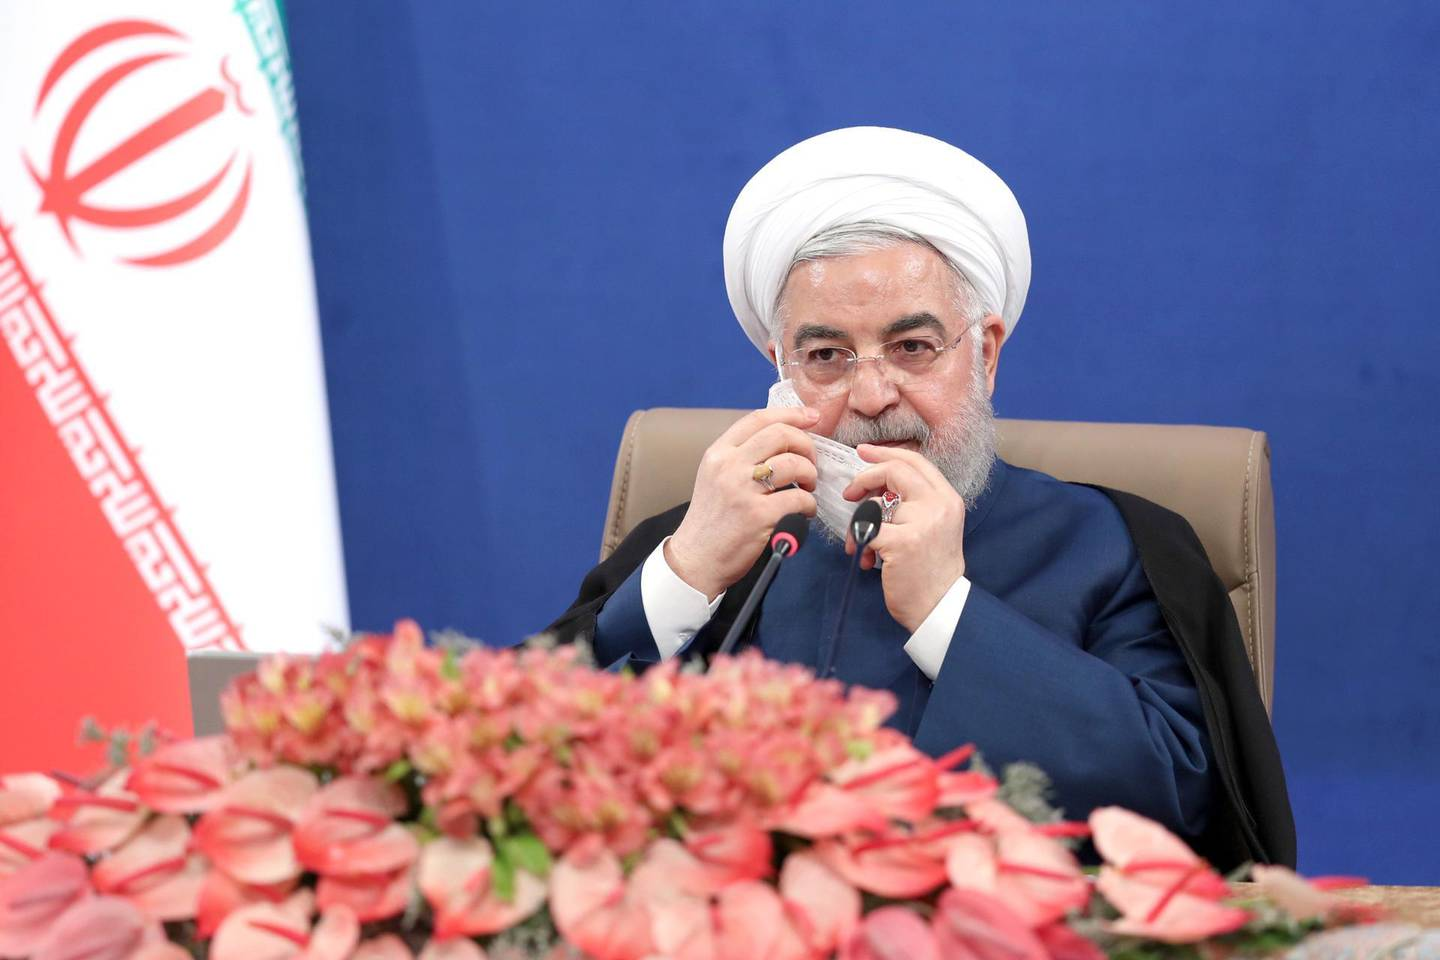 epa08571887 A handout photo made available by the presidential office of Iran shows, Iranian President Hassan Rouhani speaking during a cabinet meeting in Tehran, Iran, 29 July 2020.  EPA/PRESIDENT OFFICE HANDOUT  HANDOUT EDITORIAL USE ONLY/NO SALES